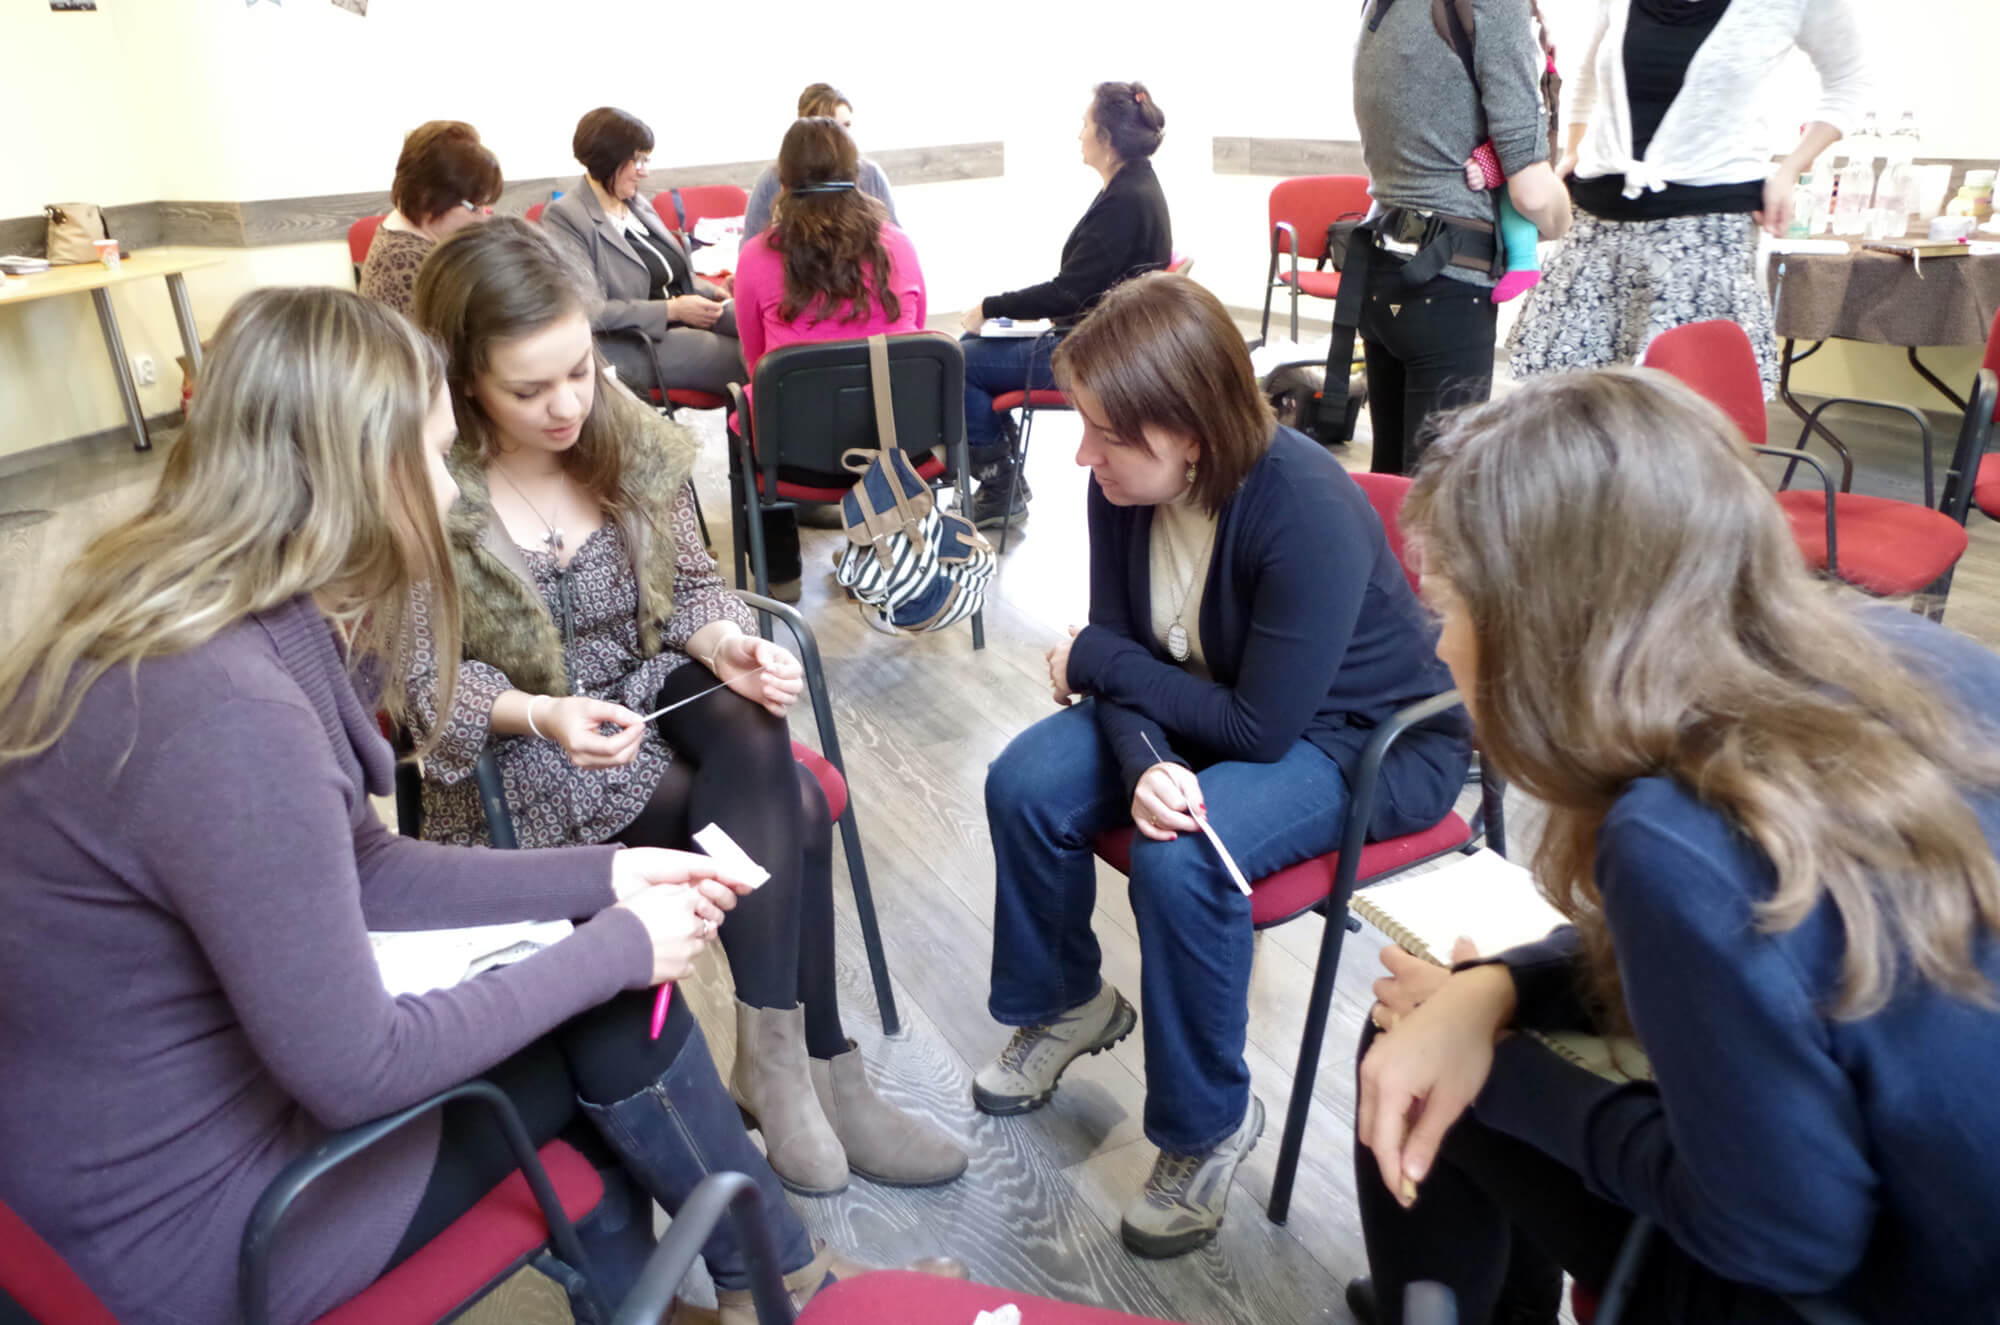 Women study together during the Hungary Intensive.